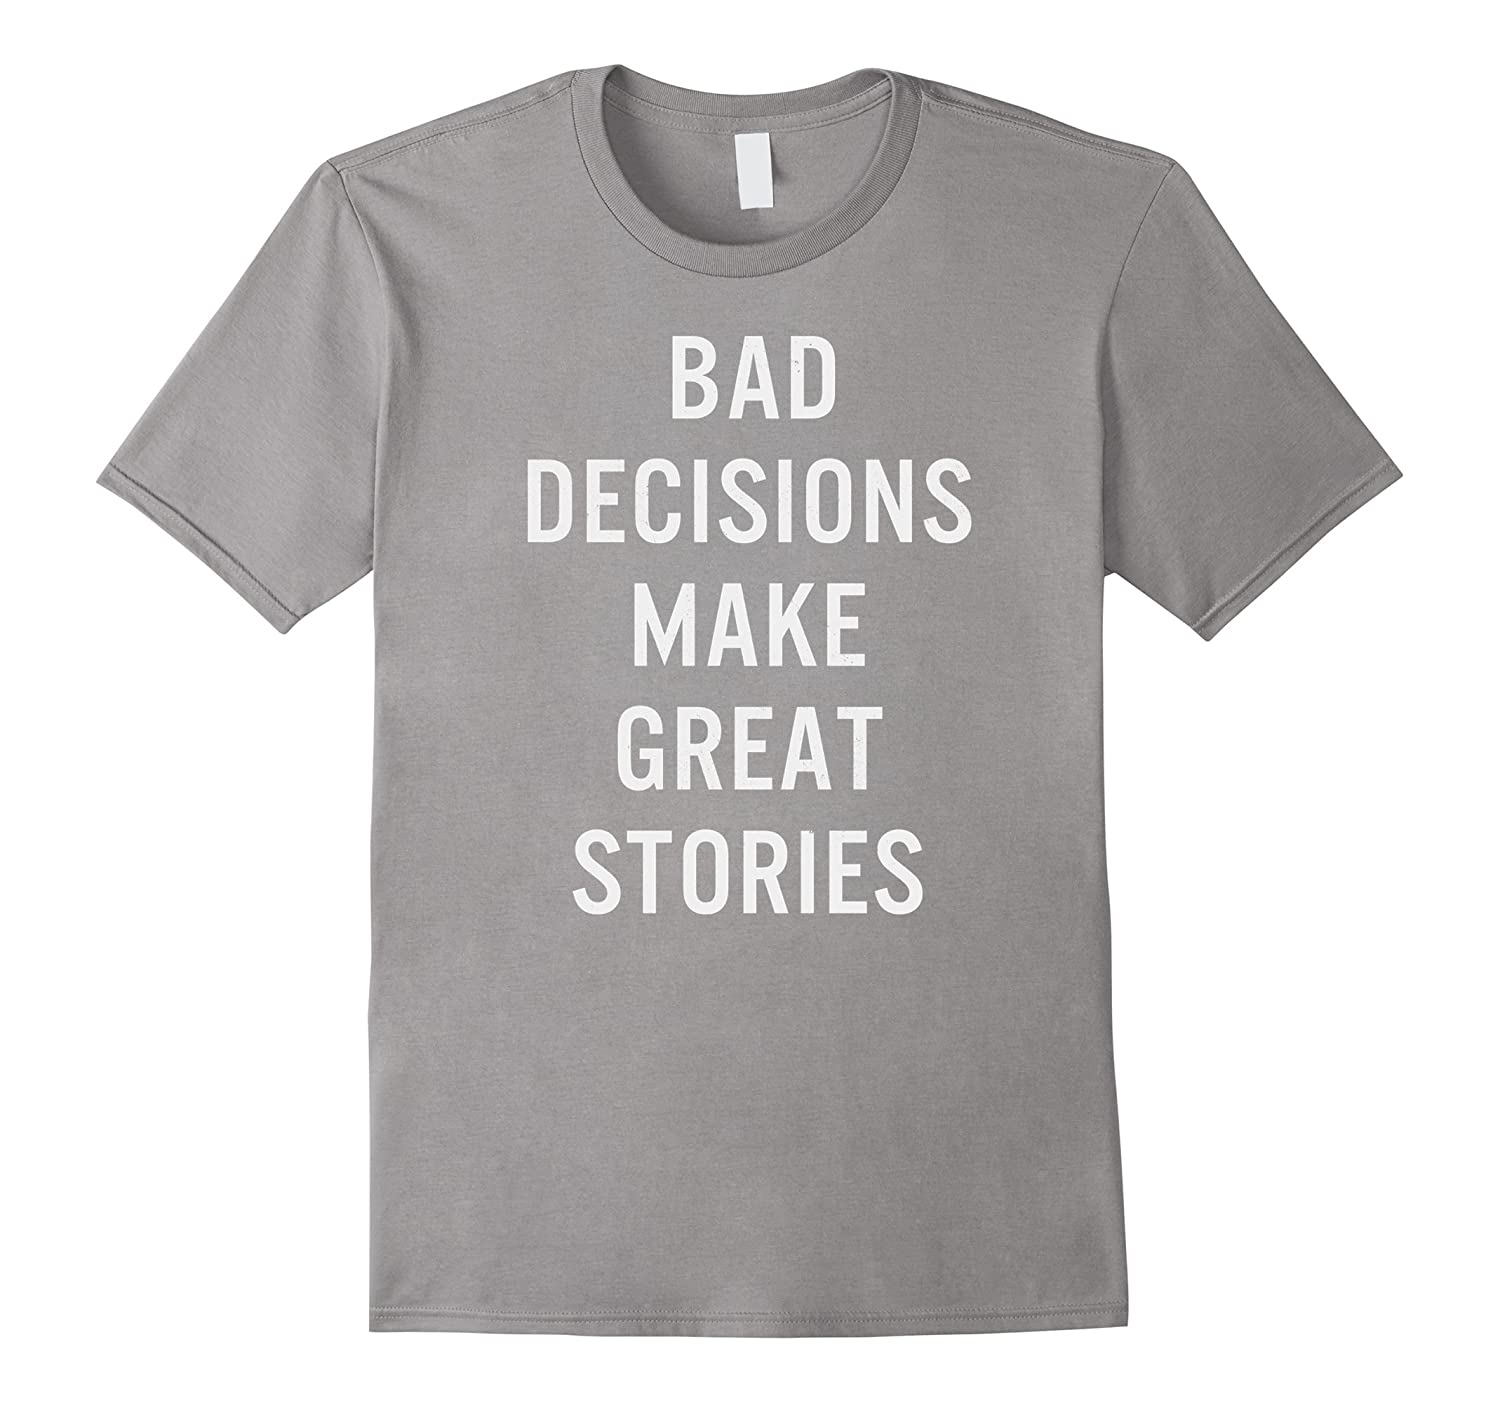 Bad decisions make great stories witty quote gift t-shirt